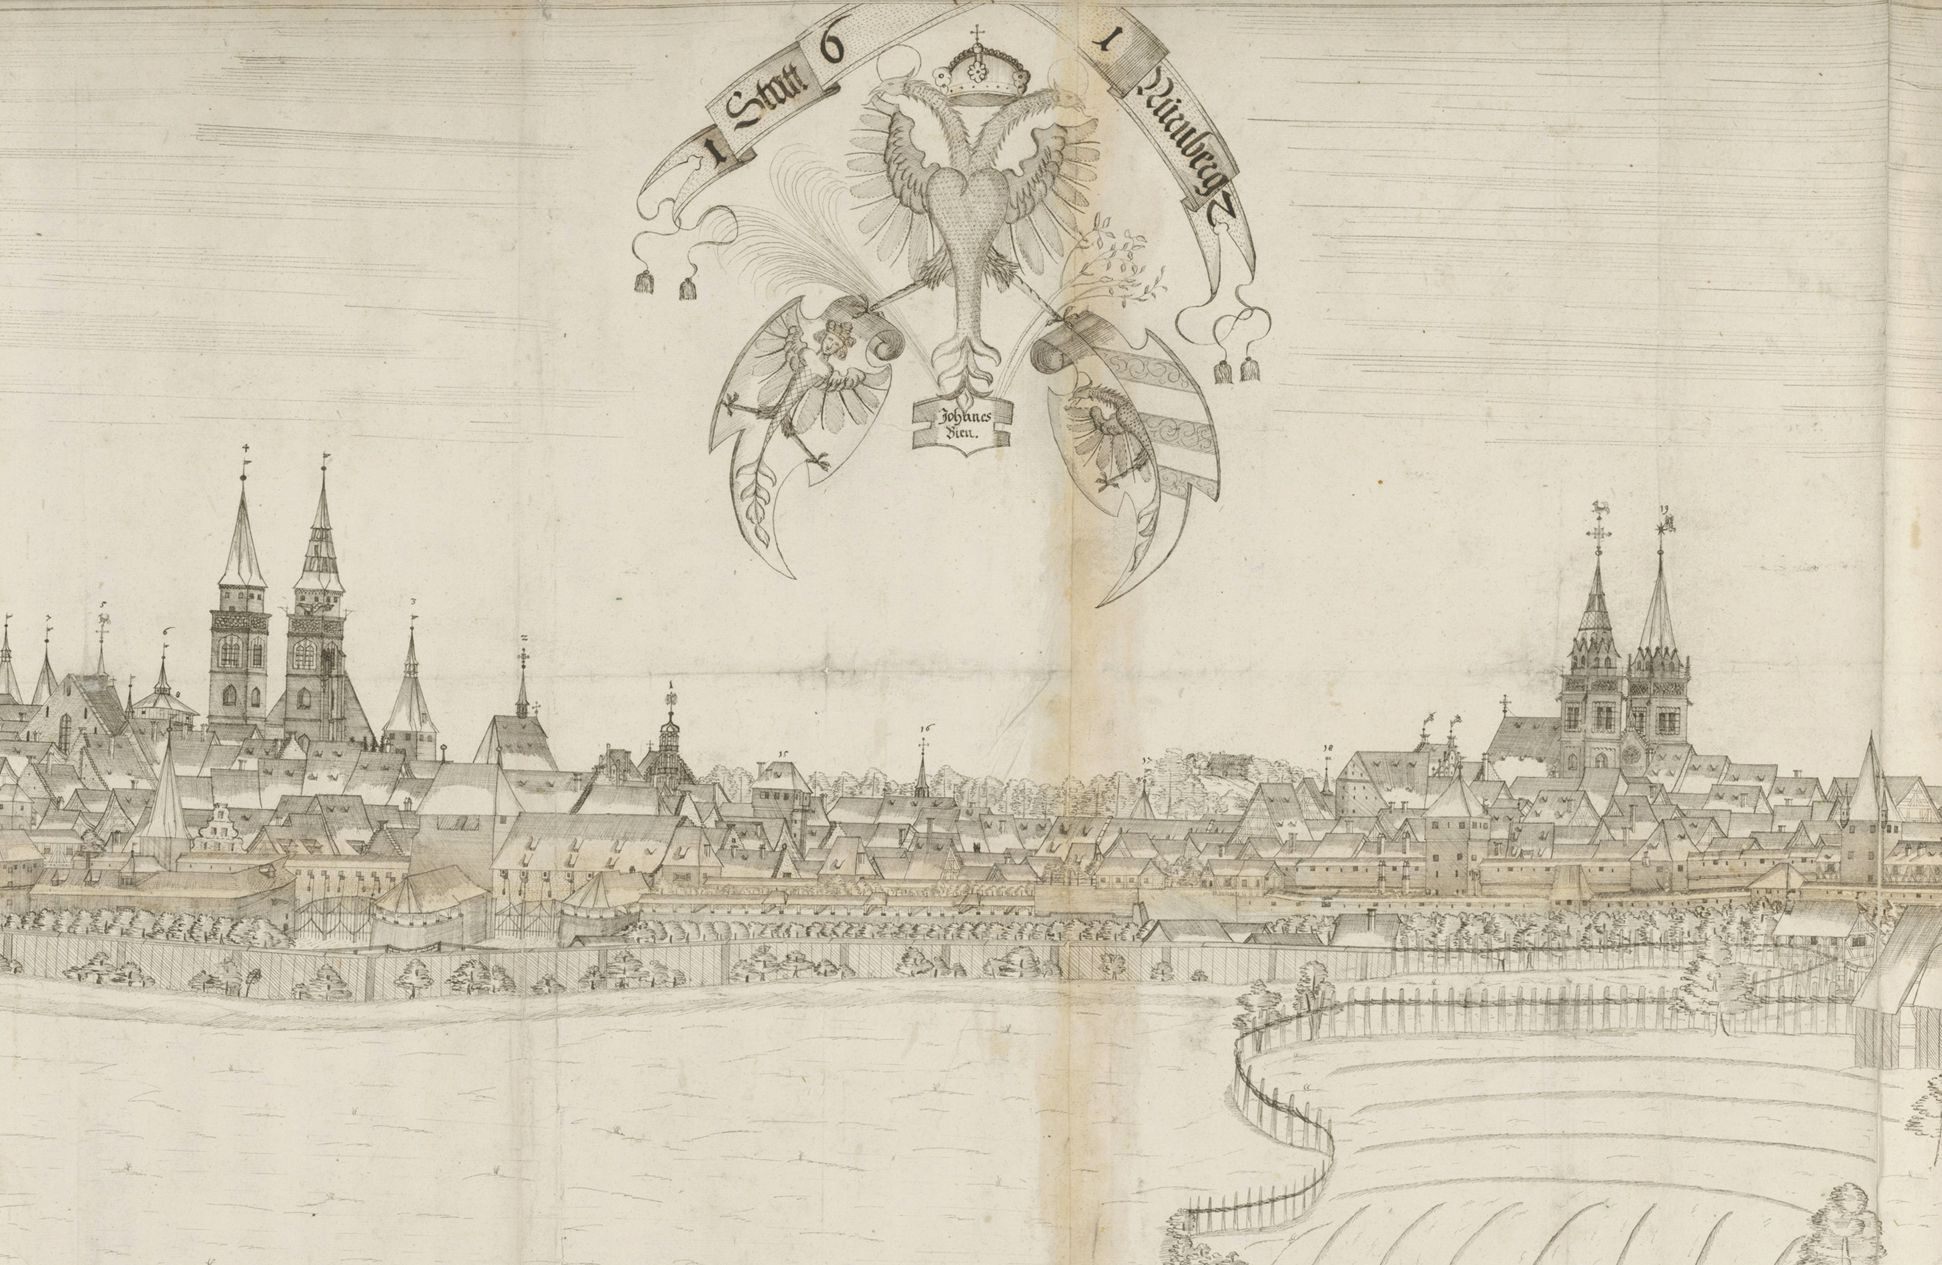 Panoramic view of the City of Nuremberg as seen from the west Detail of the central part with the two main churches and the triple coat of arms